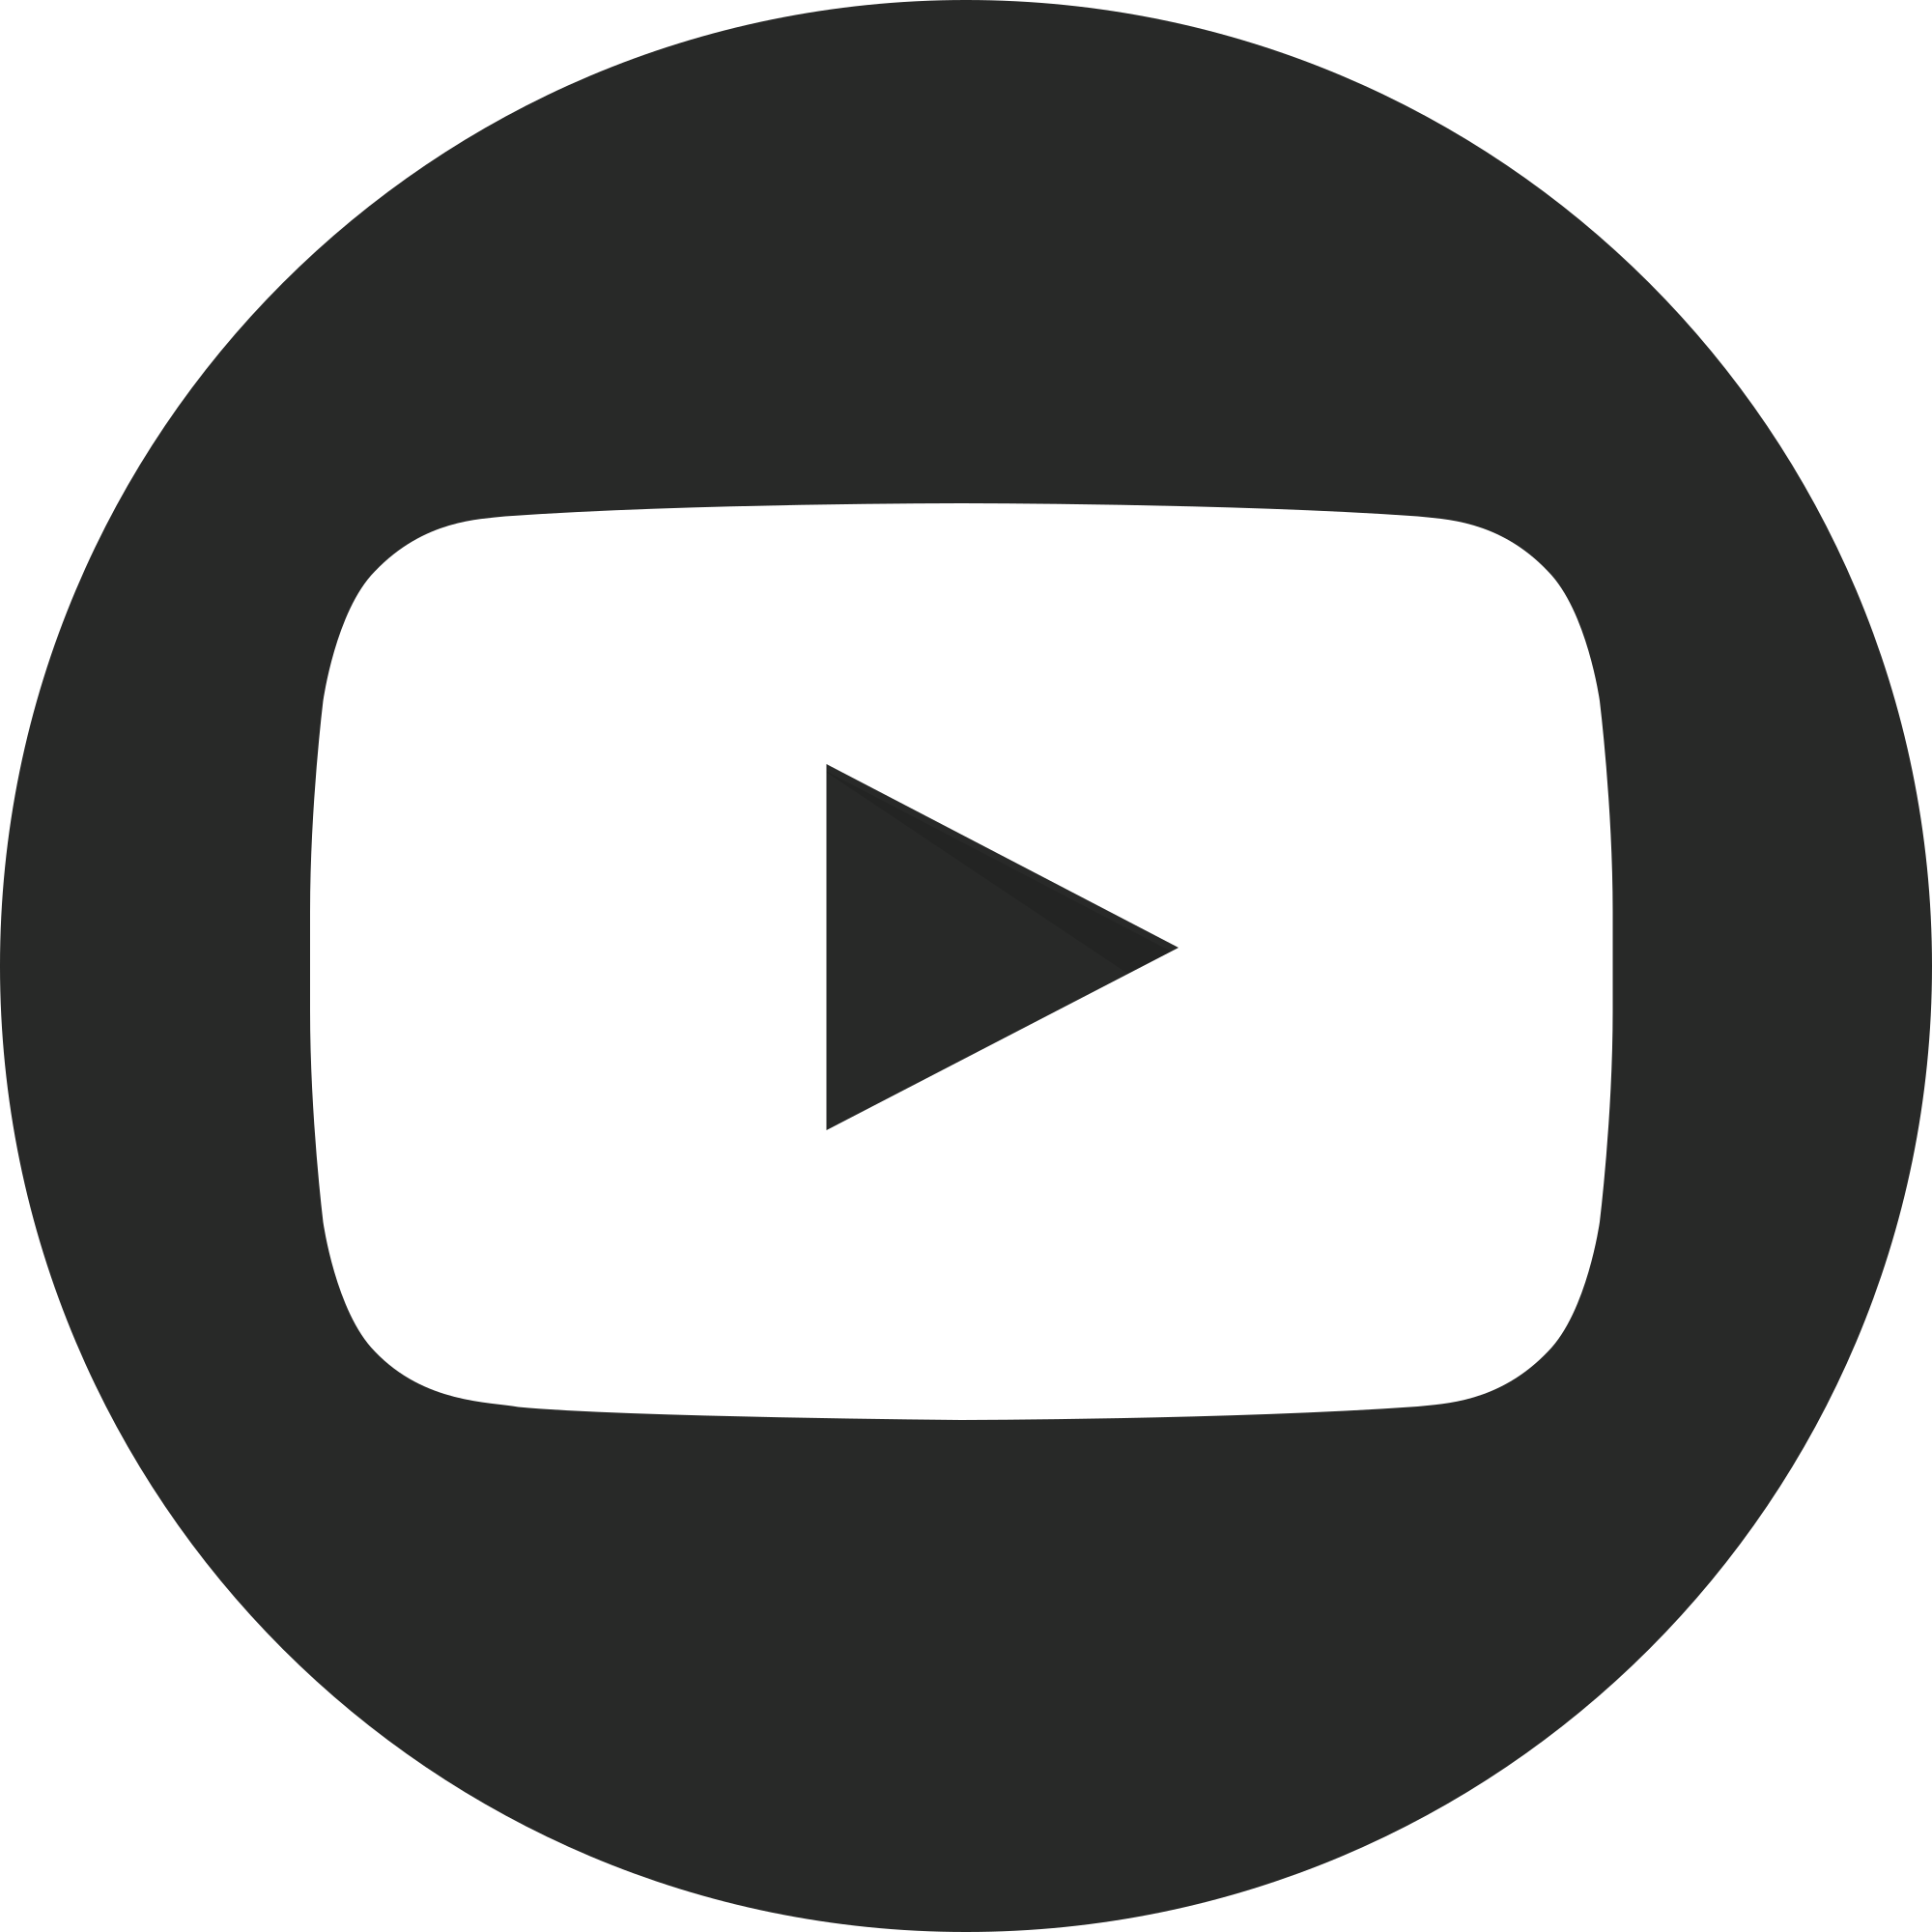 image black and white stock youtube svg button #119012856